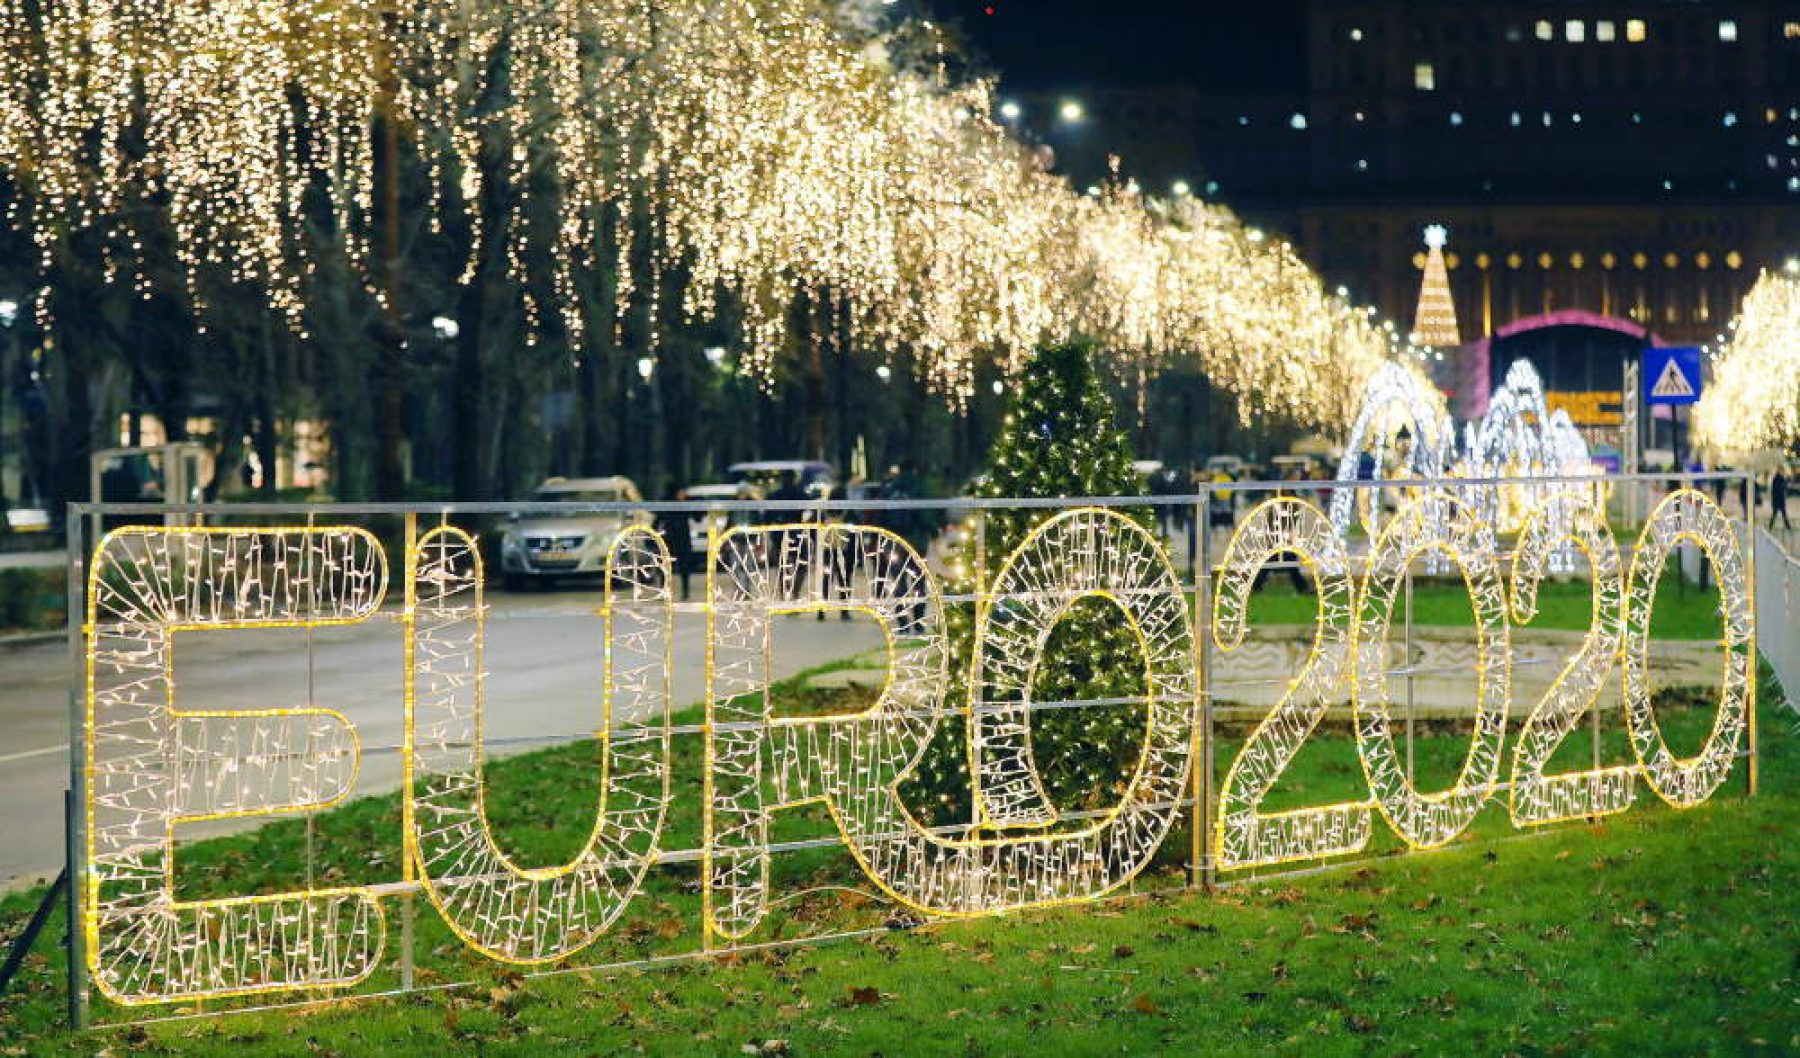 """Euro 2020 Prediction League - """"Euro 2020 Football Championship street lights at Bucharest Christmas market"""" by wuestenigel is licensed under CC BY 2.0"""